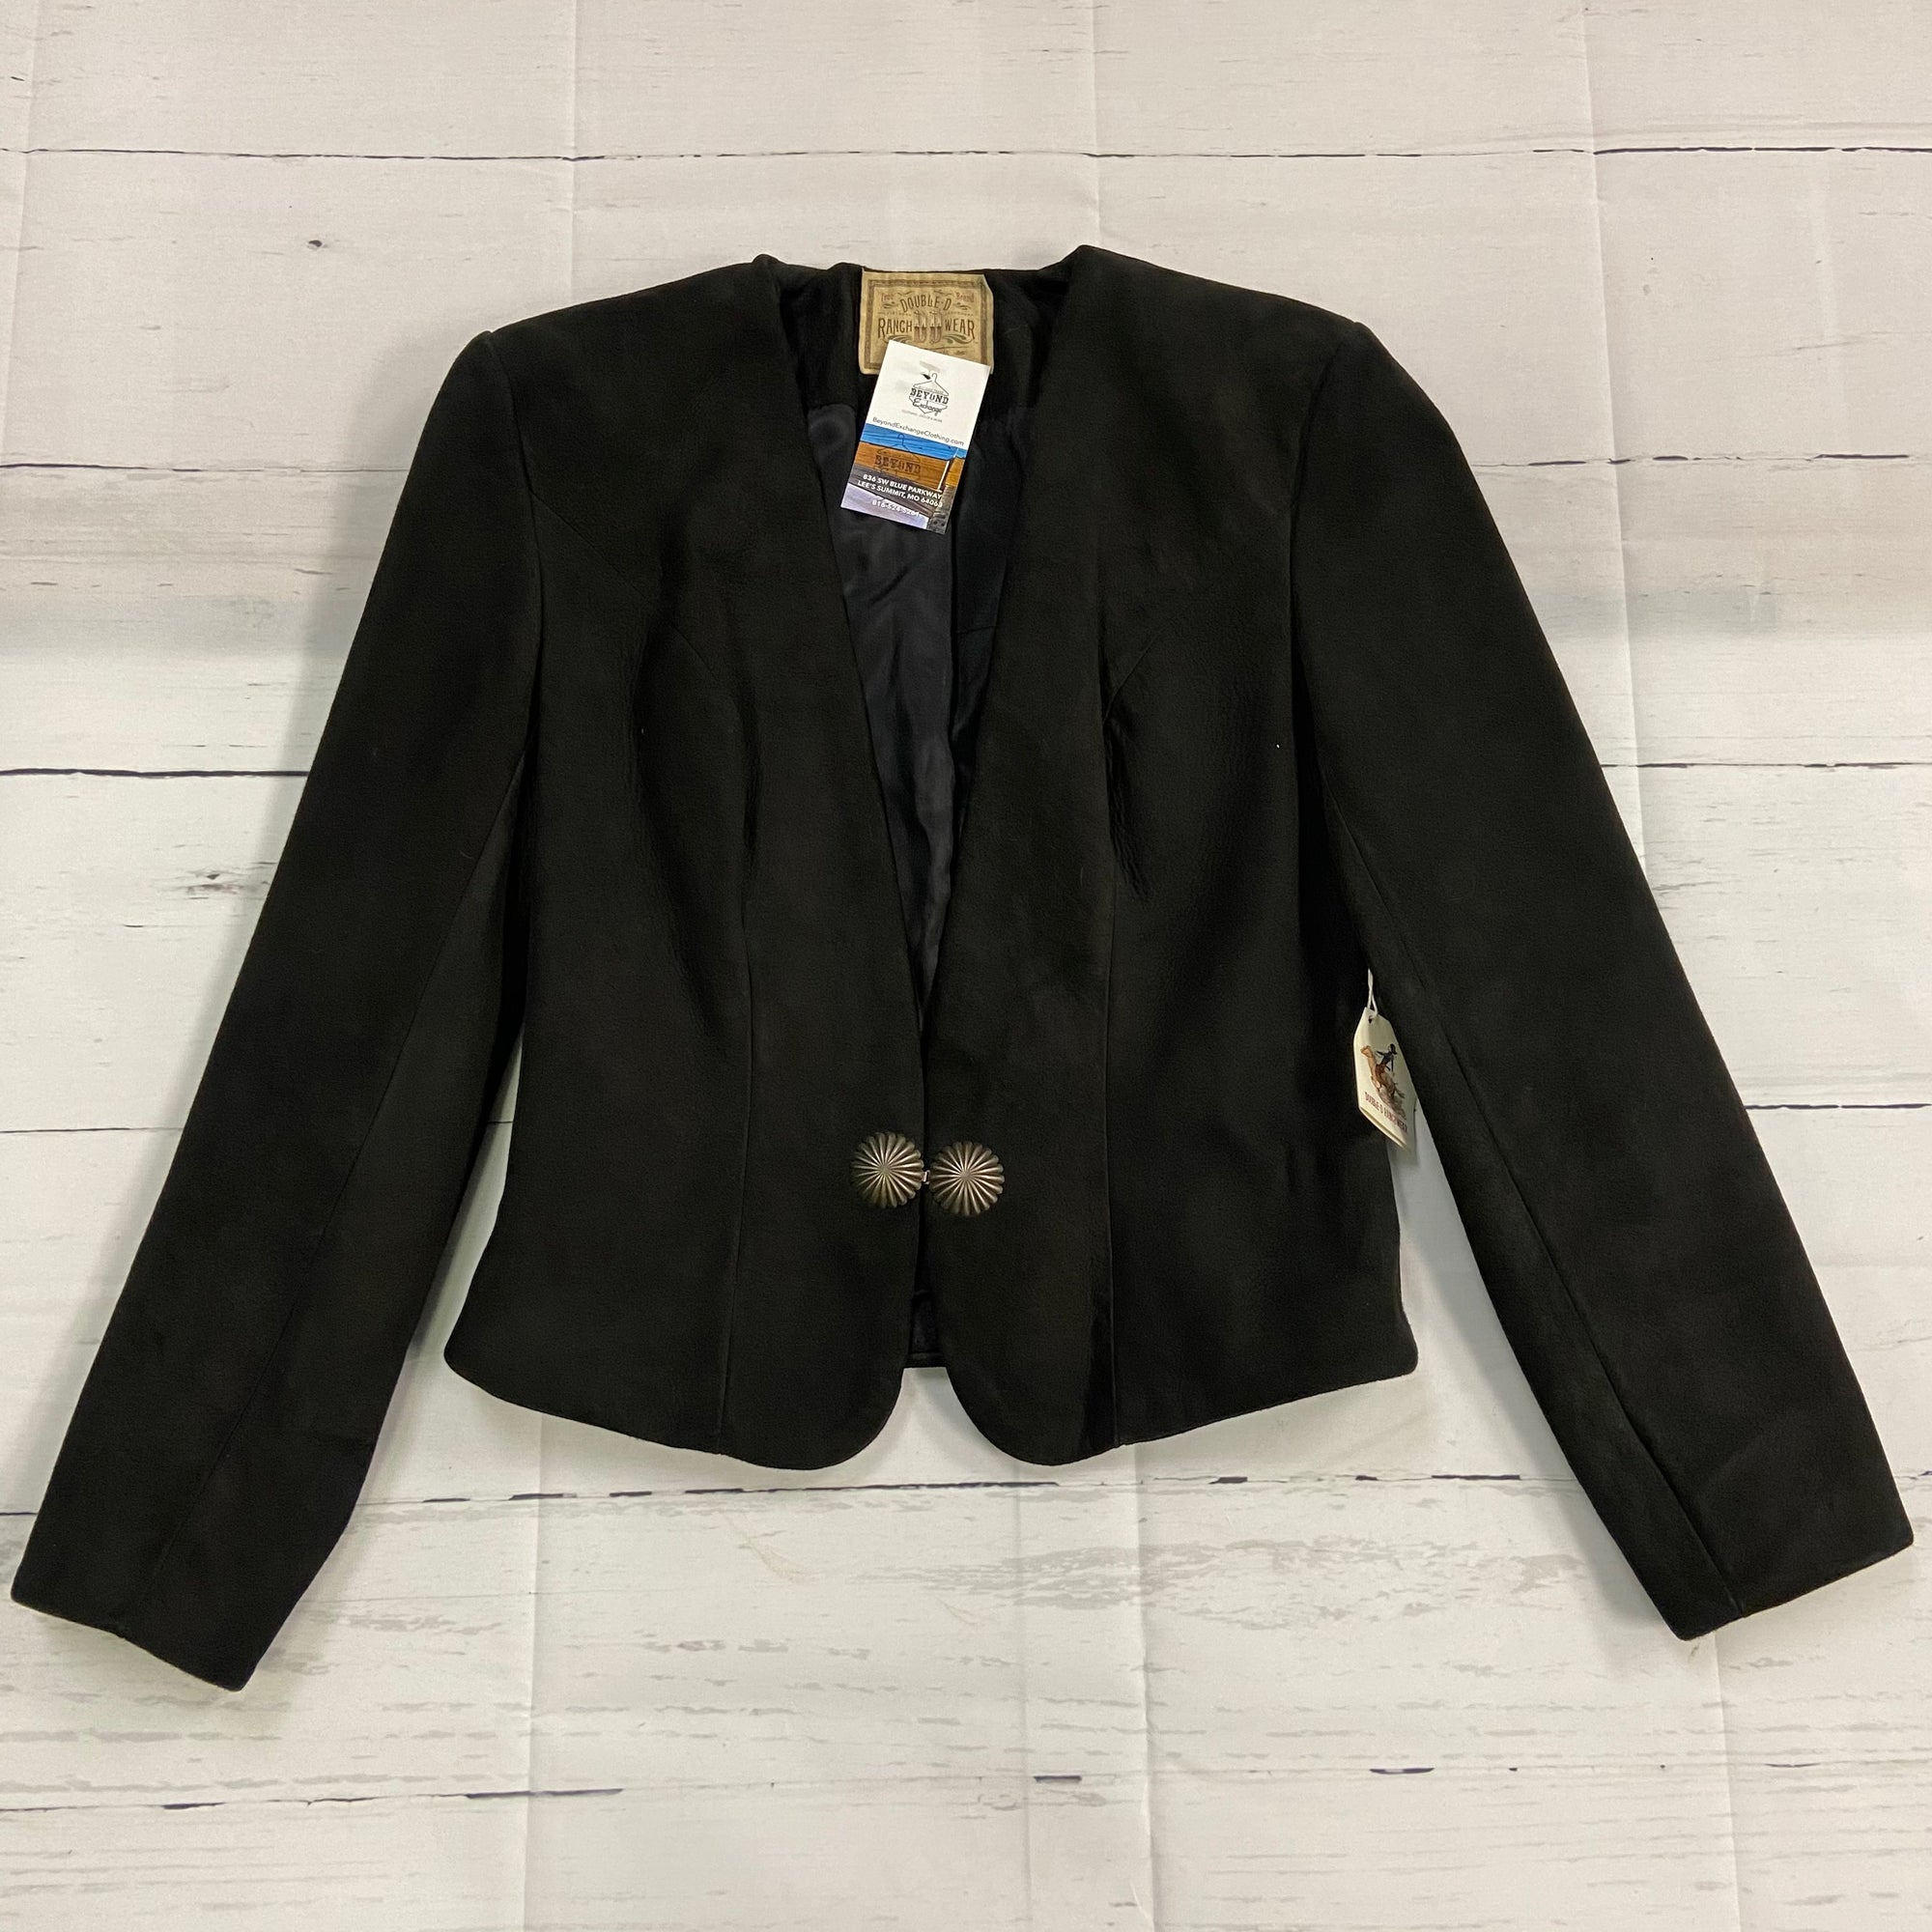 Double D Ranch Black Suede Leather Blazer Jacket Women's Size XS NEW